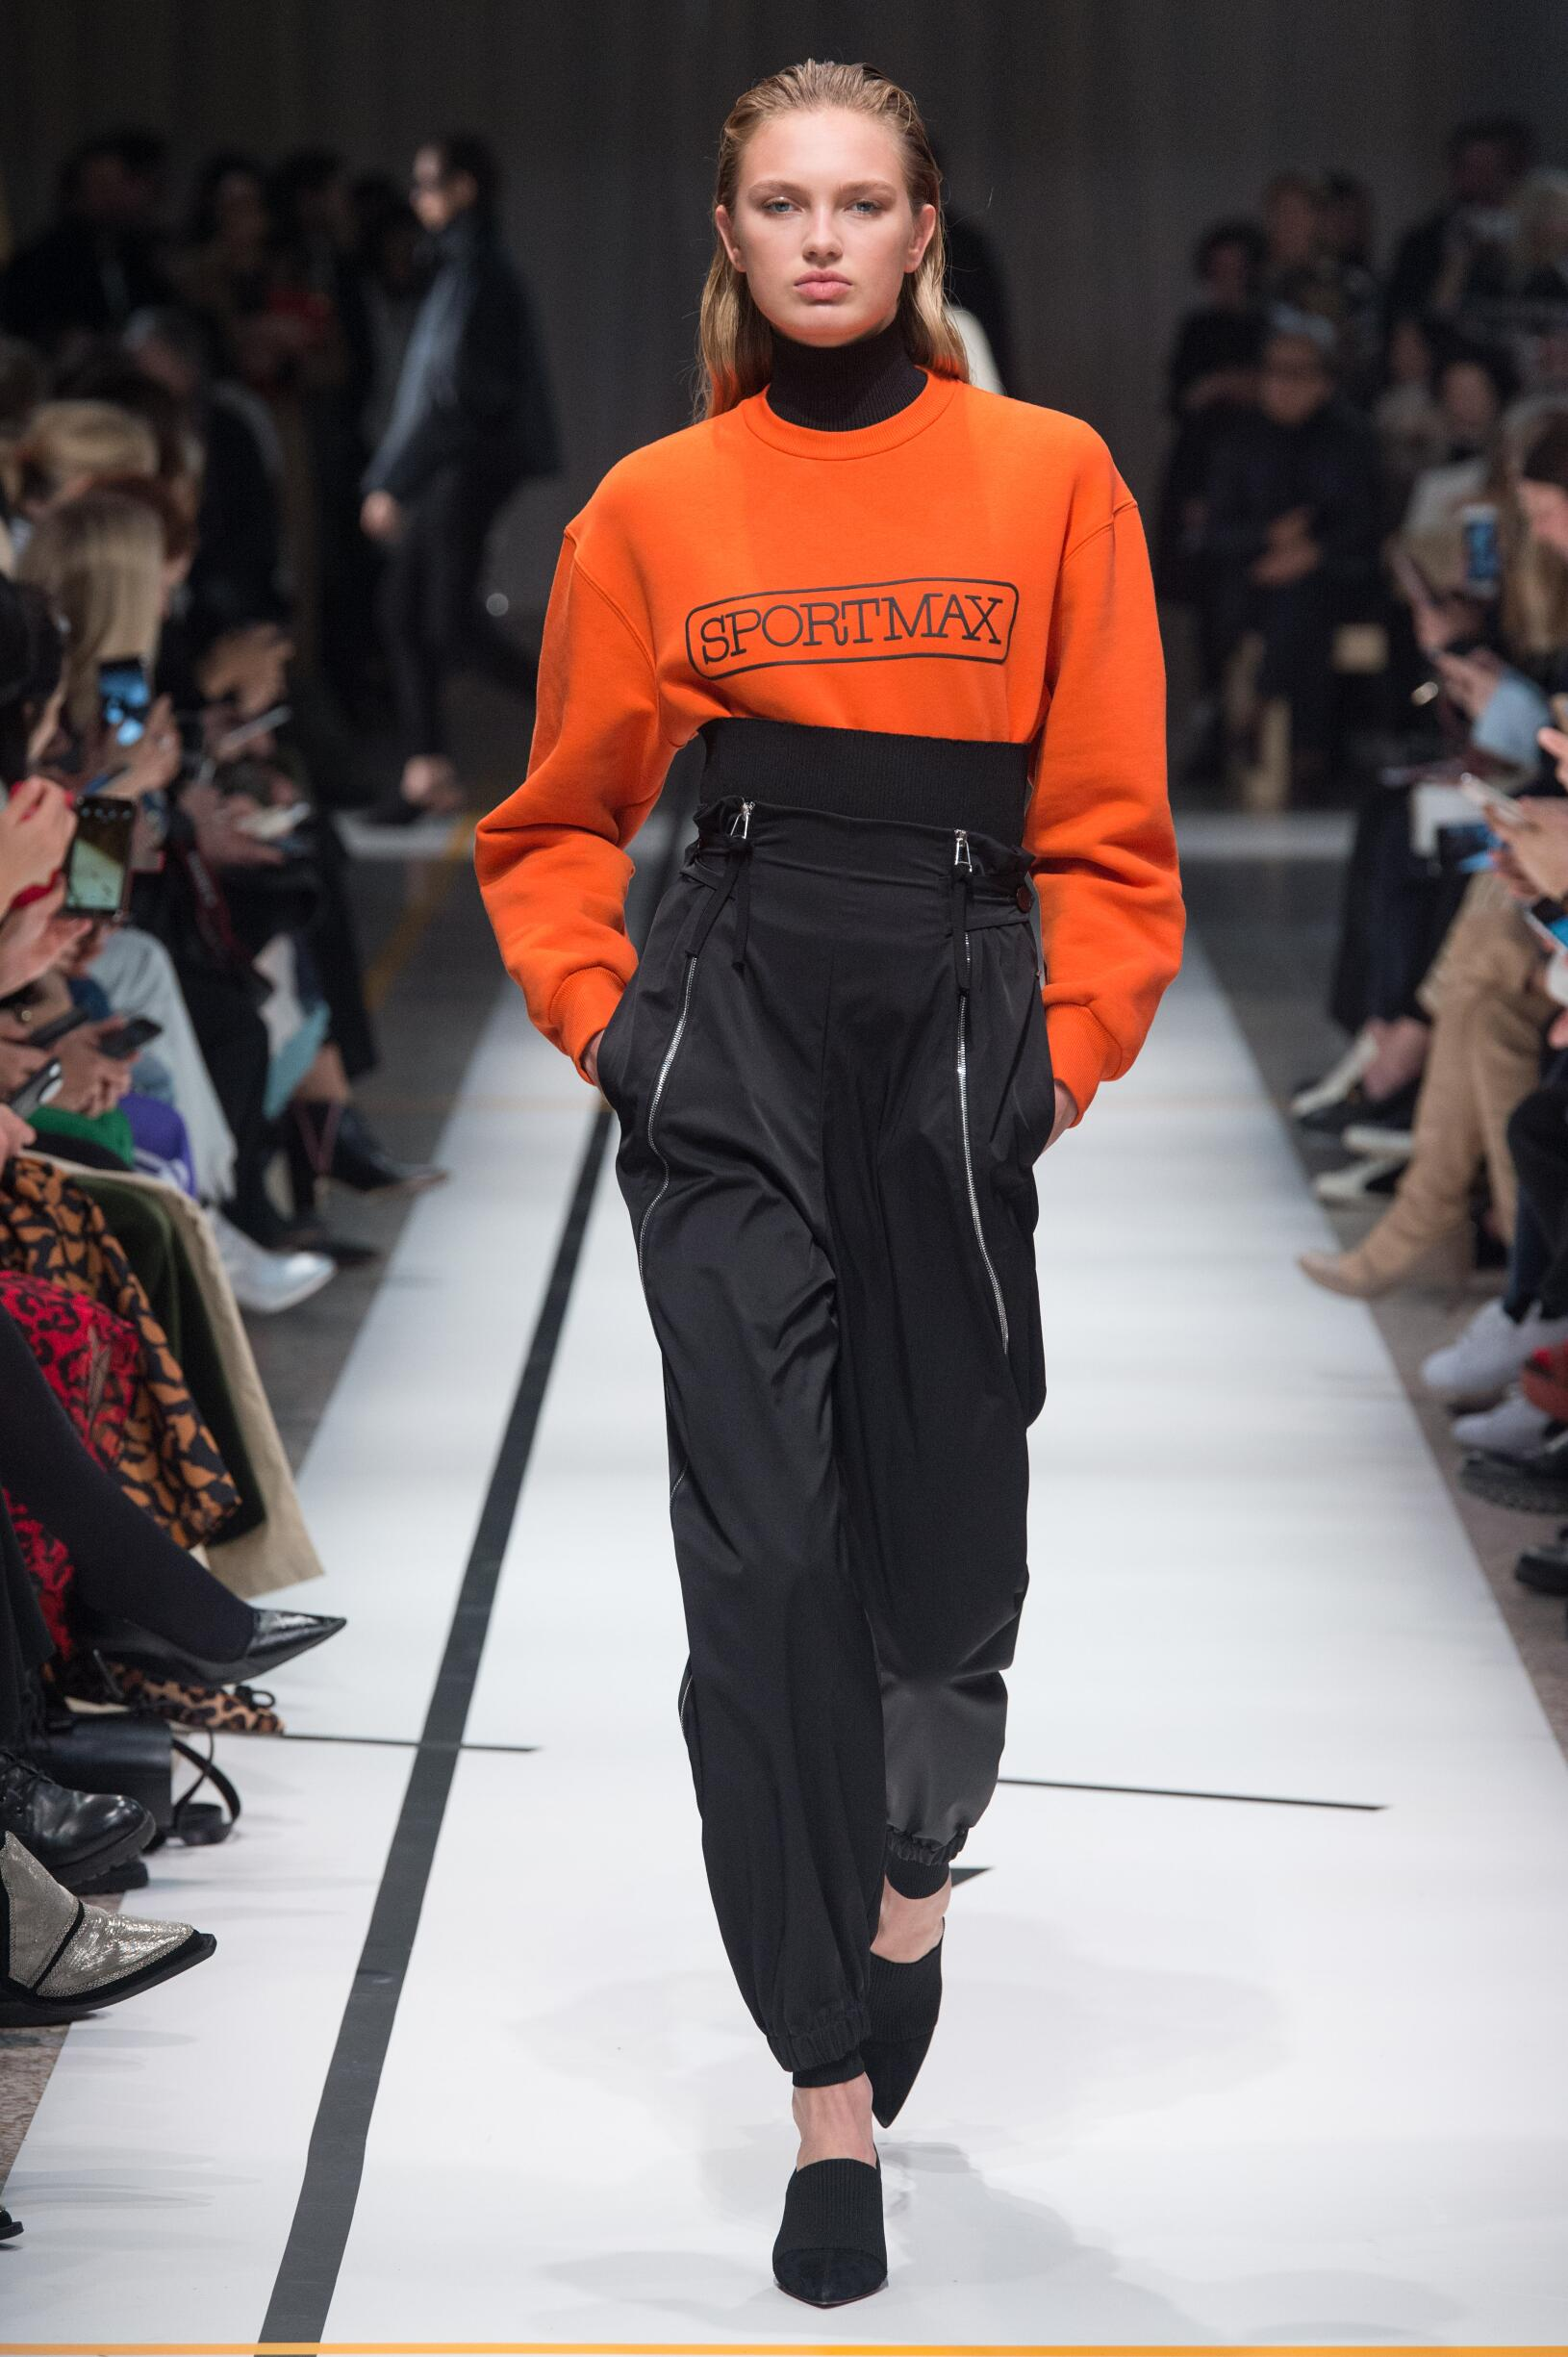 FW 2017-18 Sportmax Woman Model